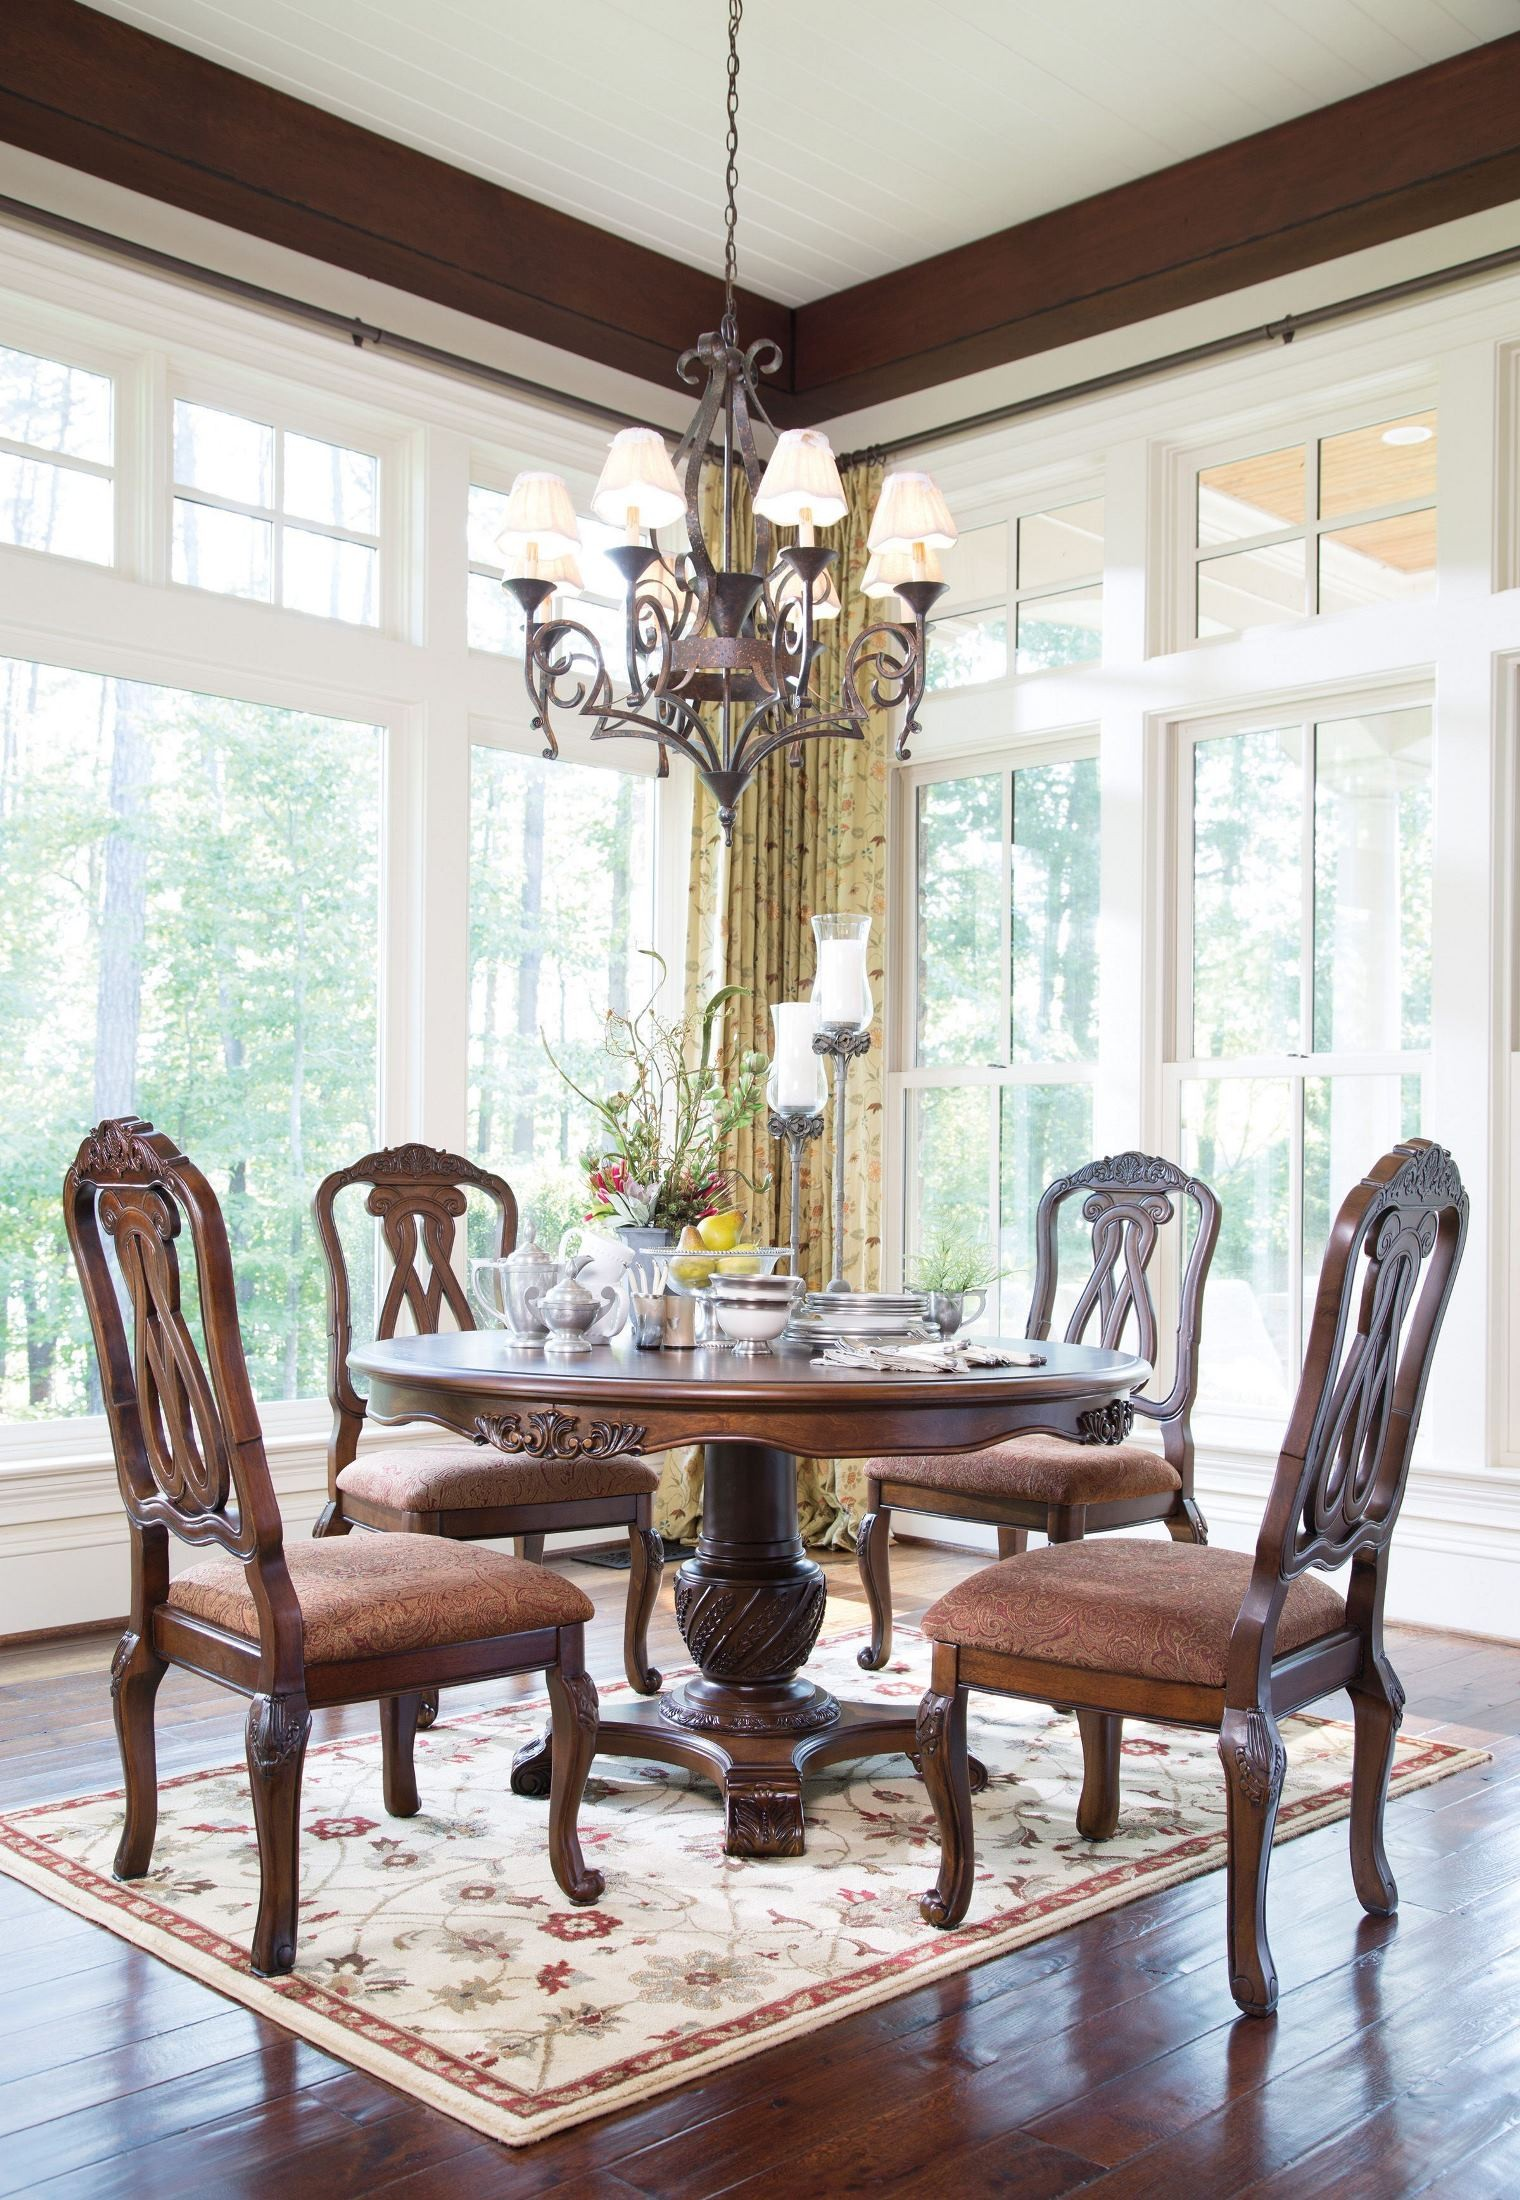 North Shore Round Pedestal Dining Room Set from Ashley D55350T50B  Coleman Furniture